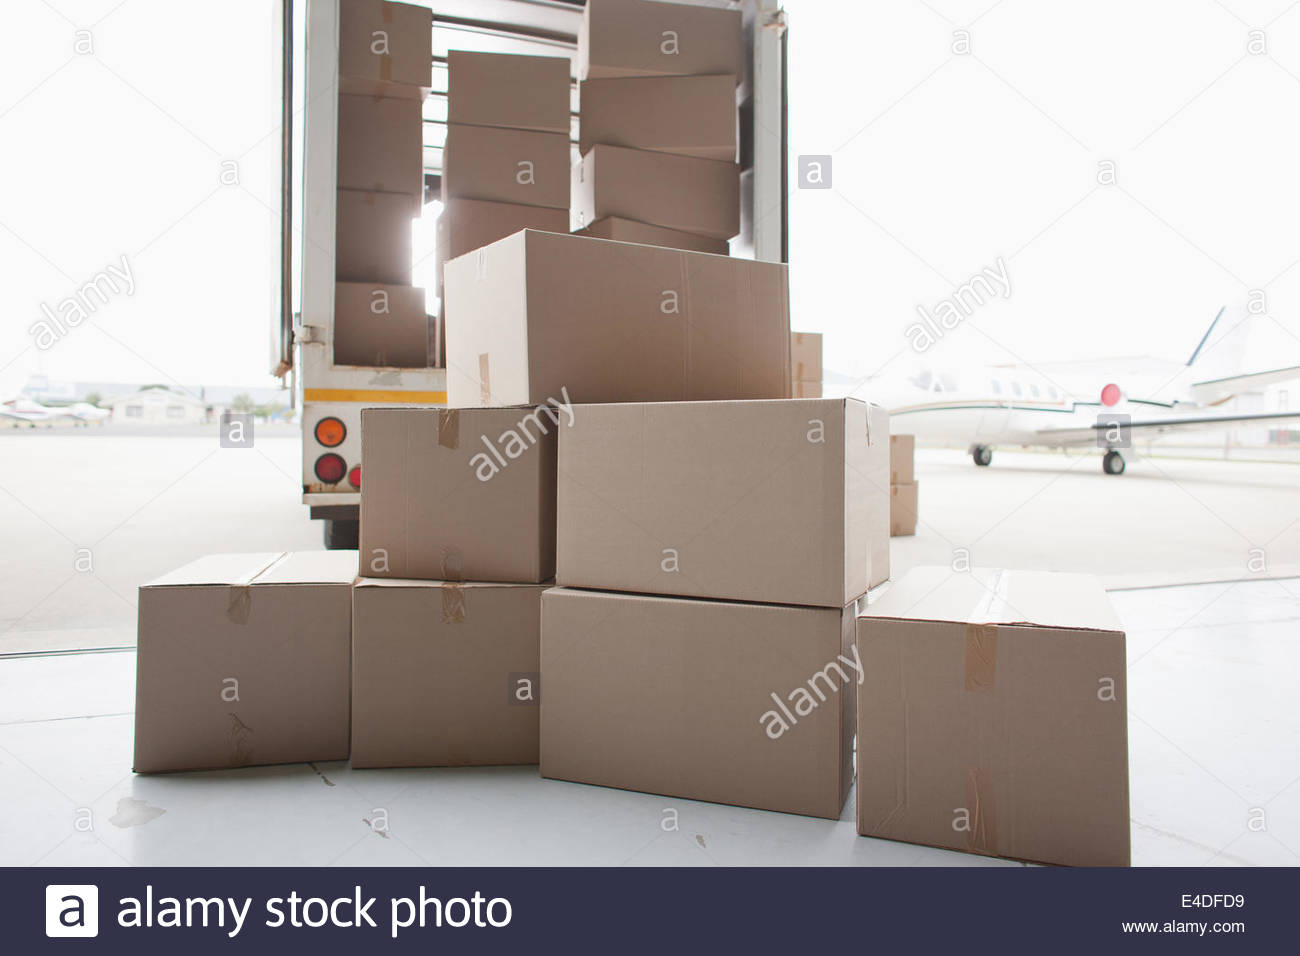 Boxes waiting to be loaded onto truck - Stock Image